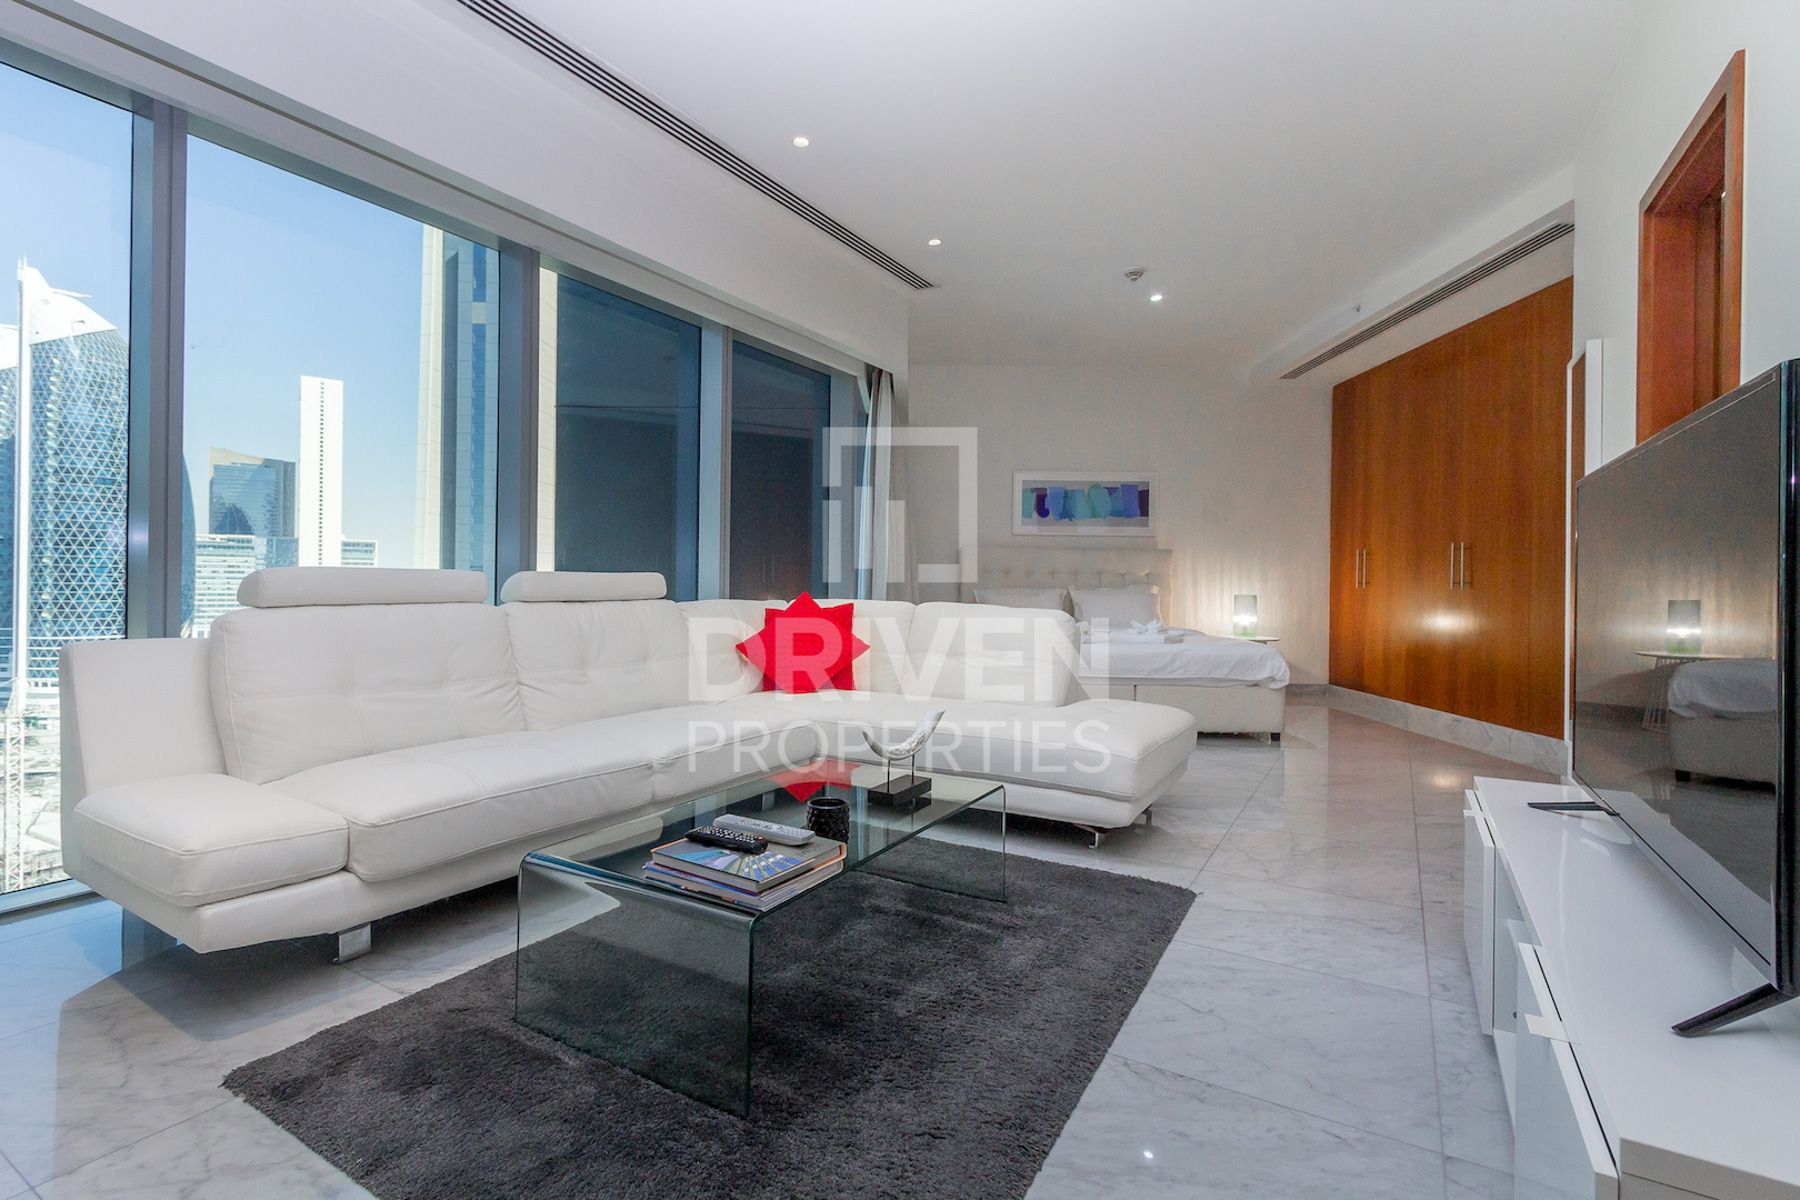 Luxurious Fully Furnished Studio Apartment